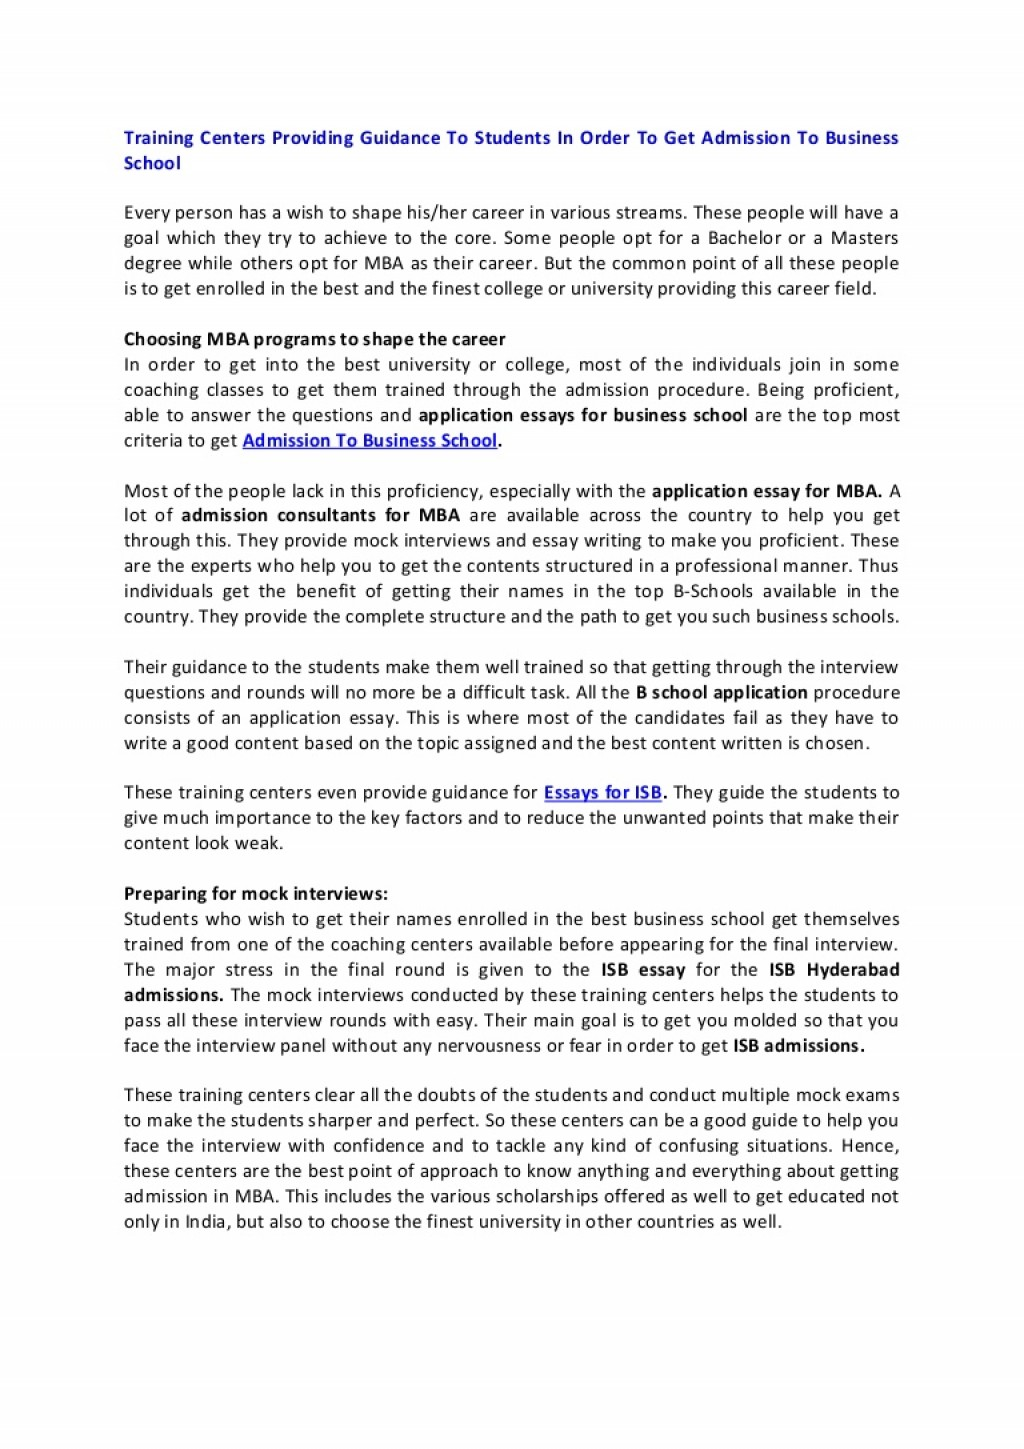 009 Essay Example Columbia Essays Application For Business School Ivyctor Article1 Phpapp01 Thumbn Stanford Harvard Sample Format Best Examples Shocking Mba That Worked Undergraduate Large